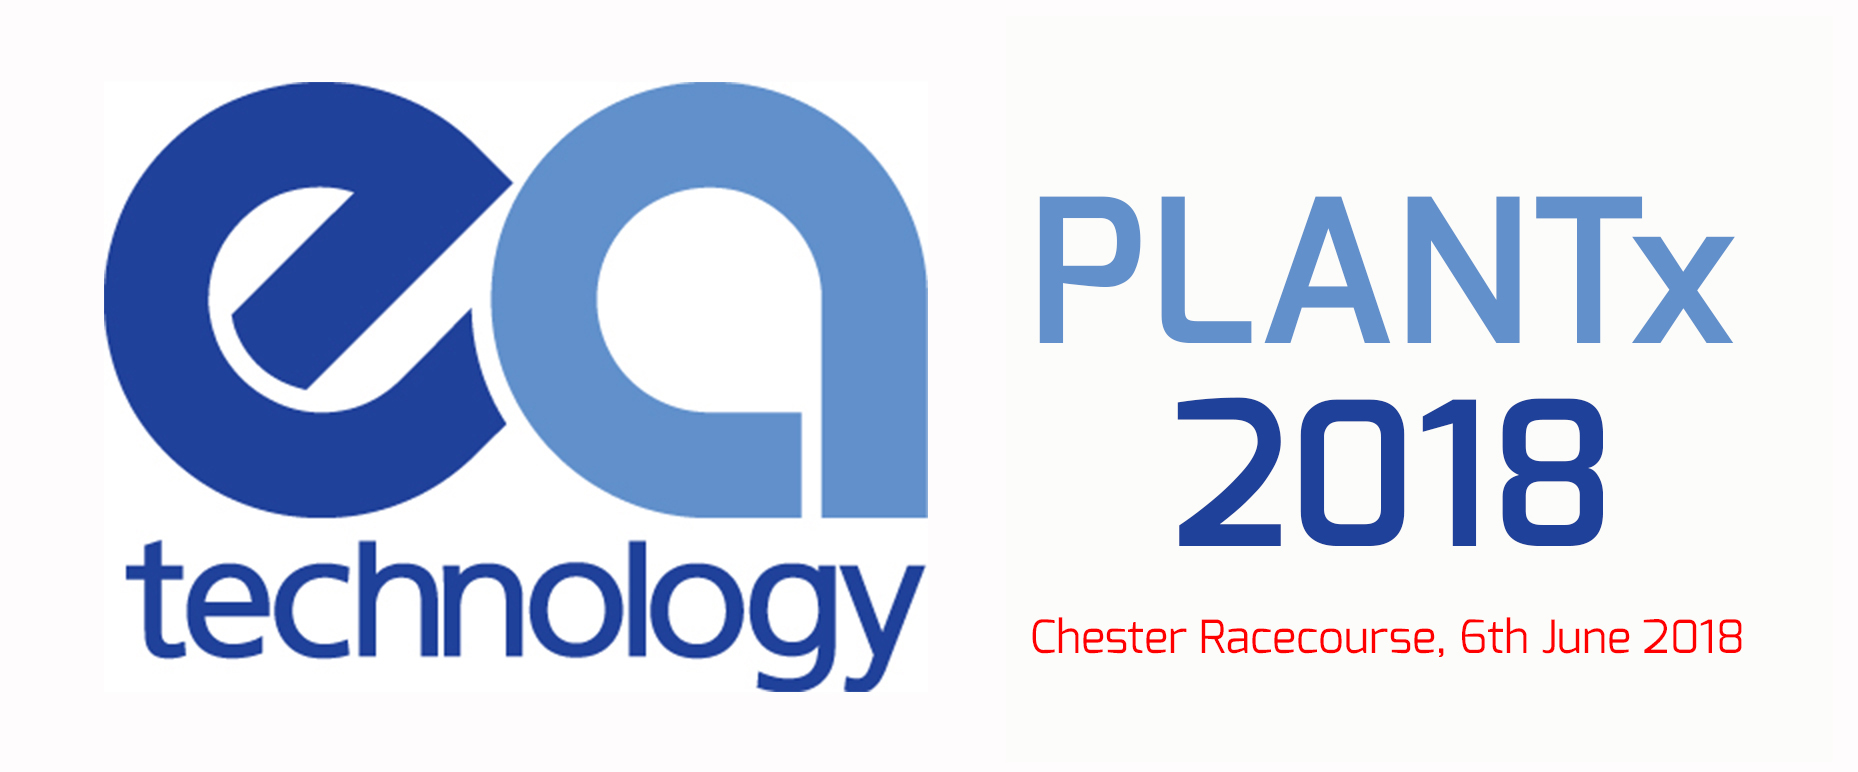 Plantex 2018 logo visit us 6th of June at Chester racecourse